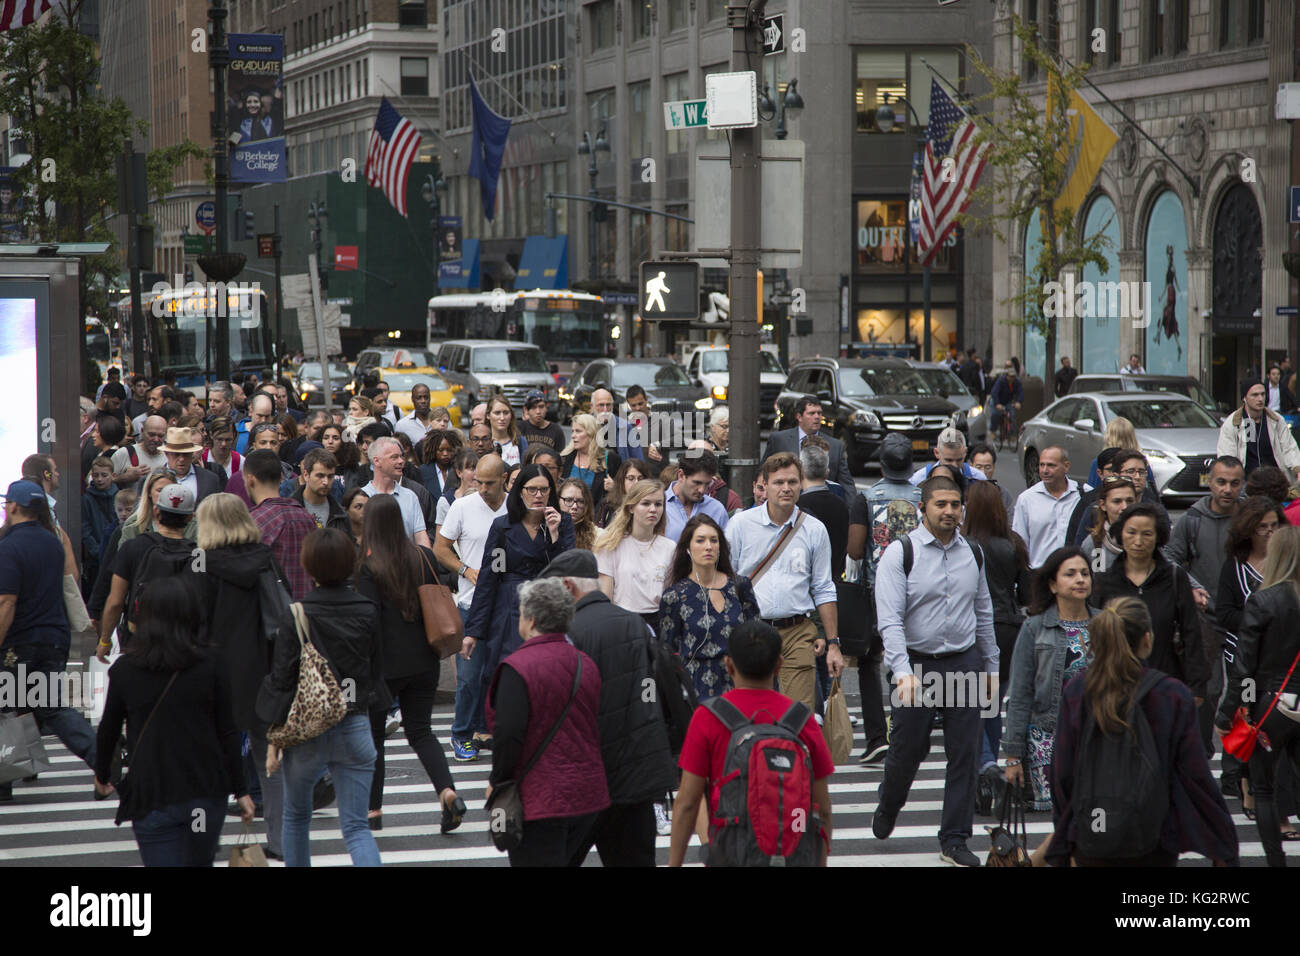 5th Avenue and 42nd Street is one of the busiest street crossings in New York City especially at the evening rush - Stock Image